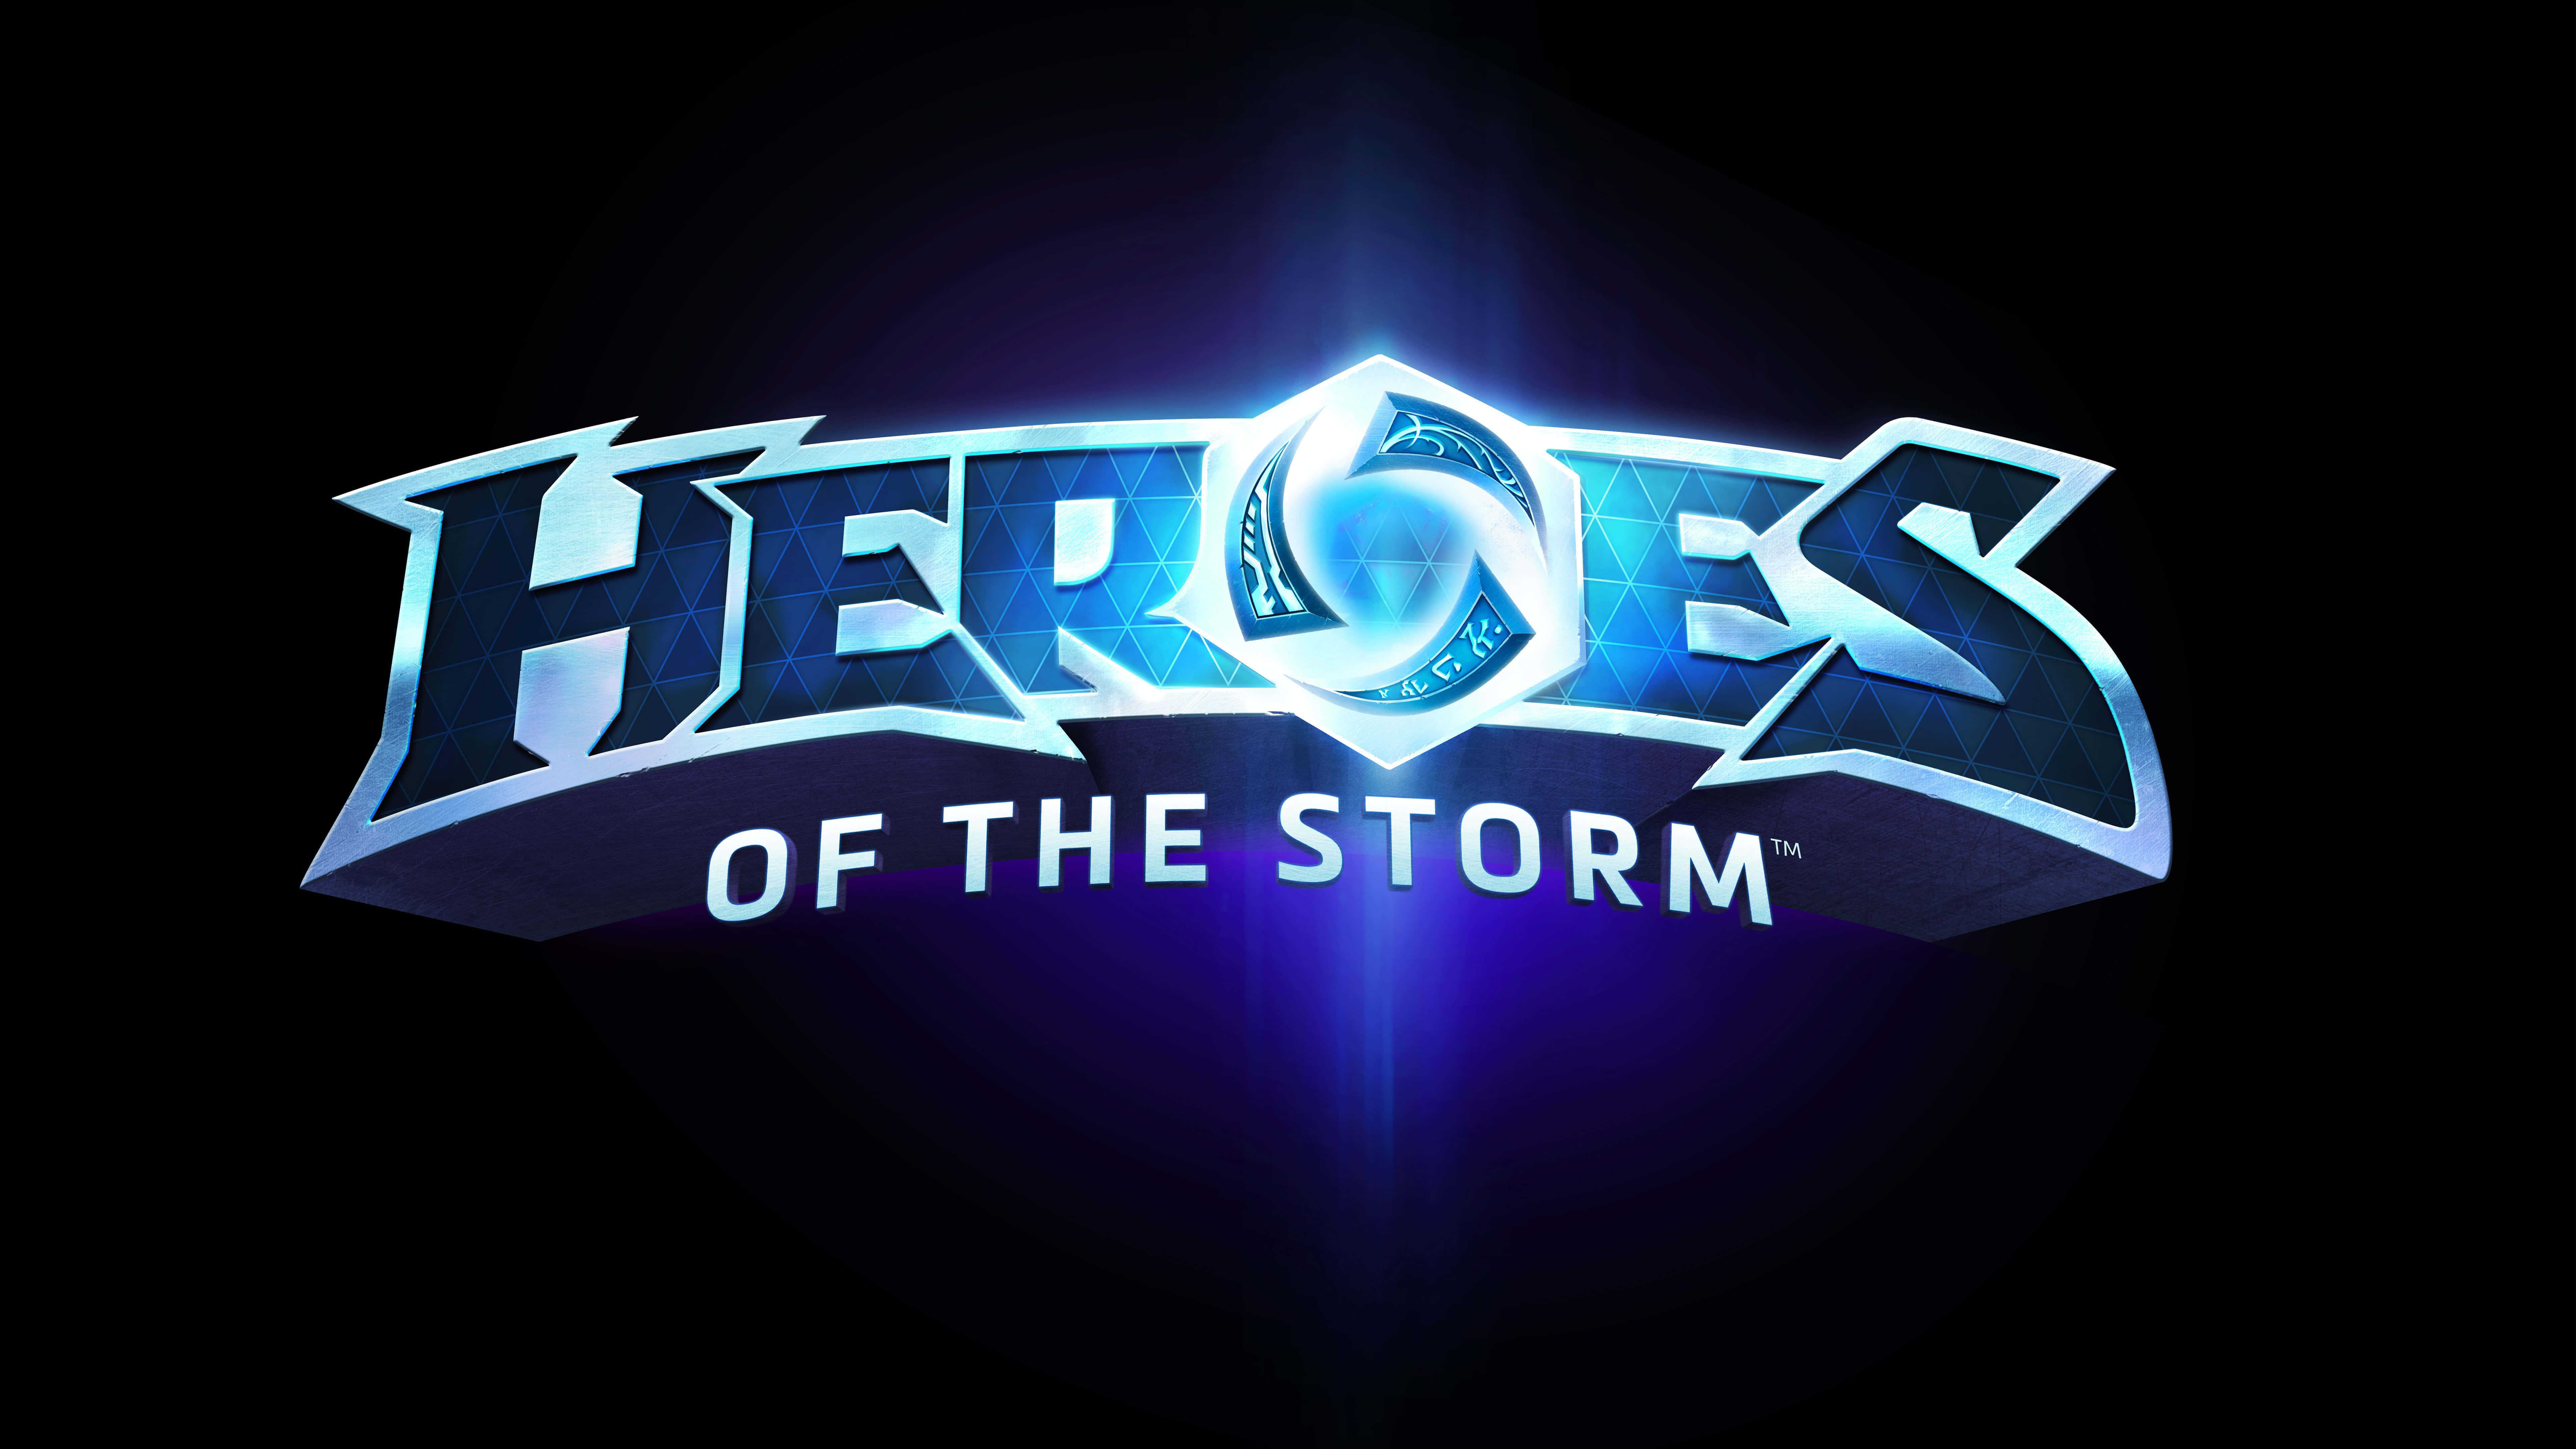 heroes of the storm logo uhd 8k wallpaper